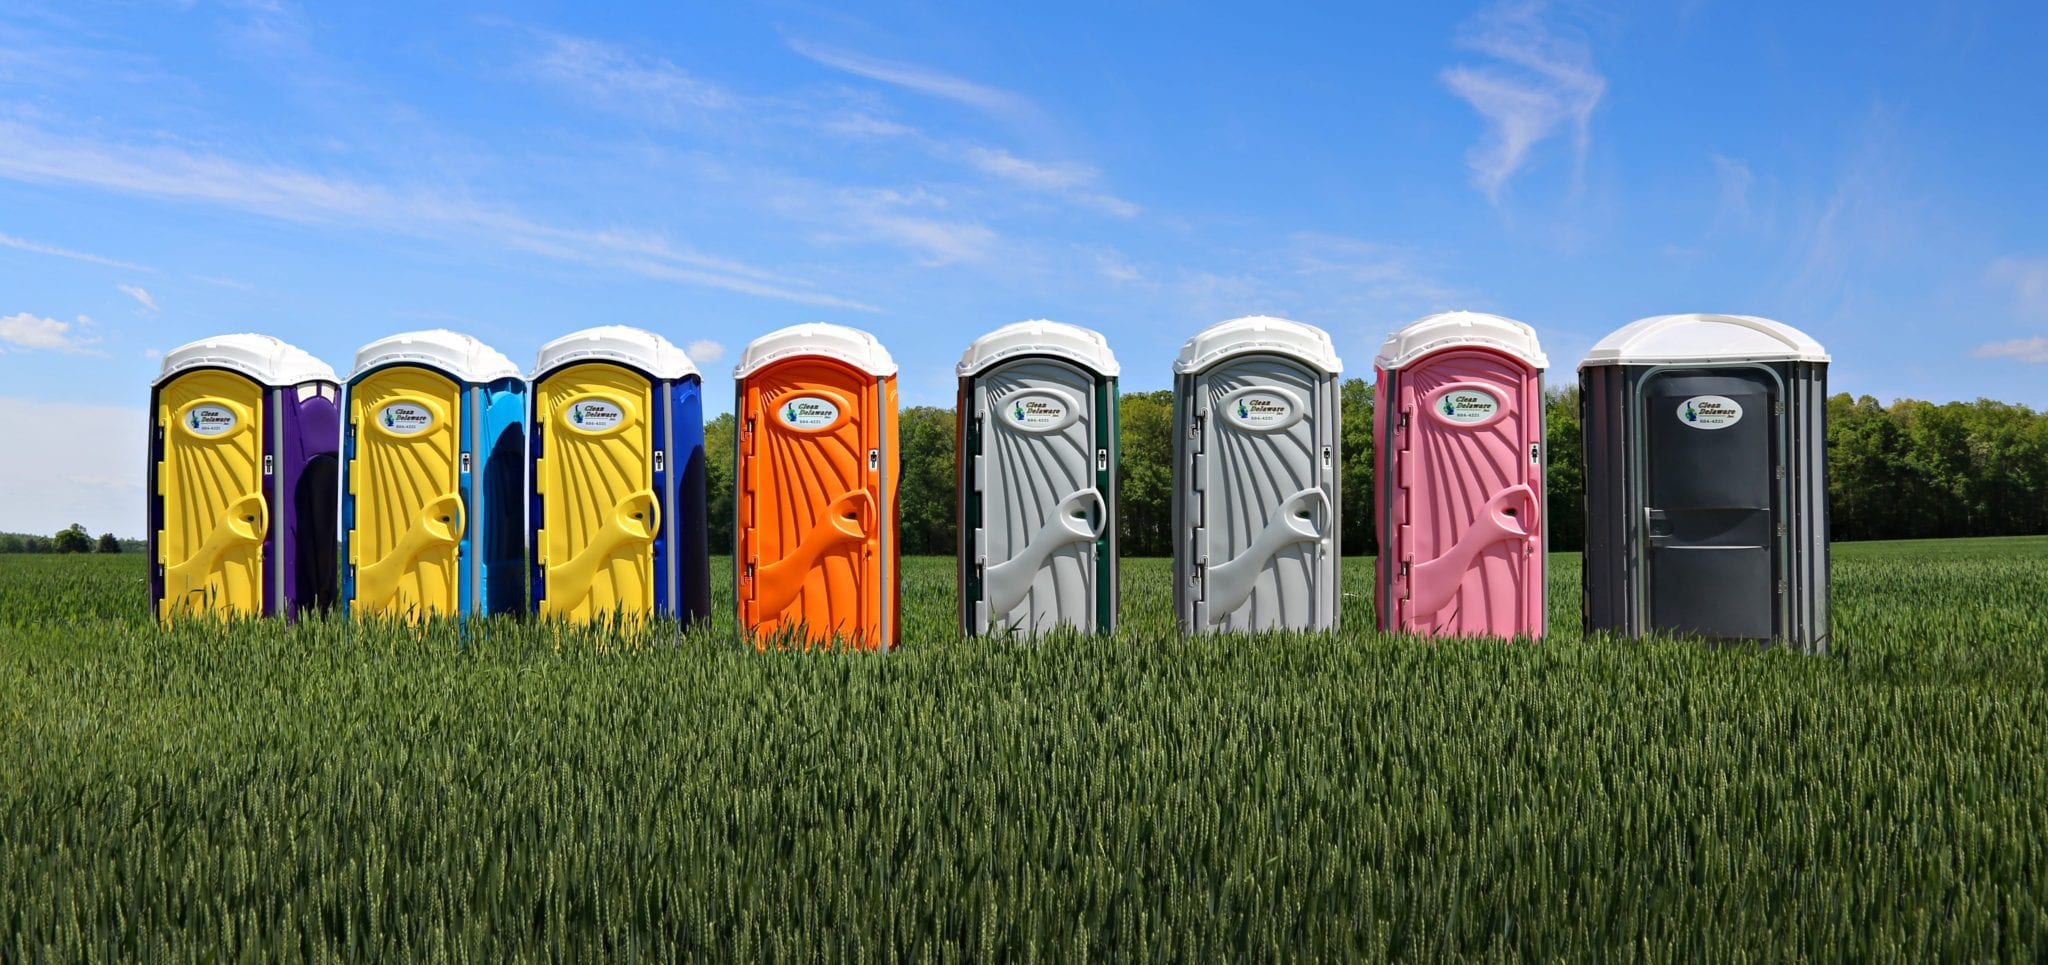 hi-res-Portable-Toilets1